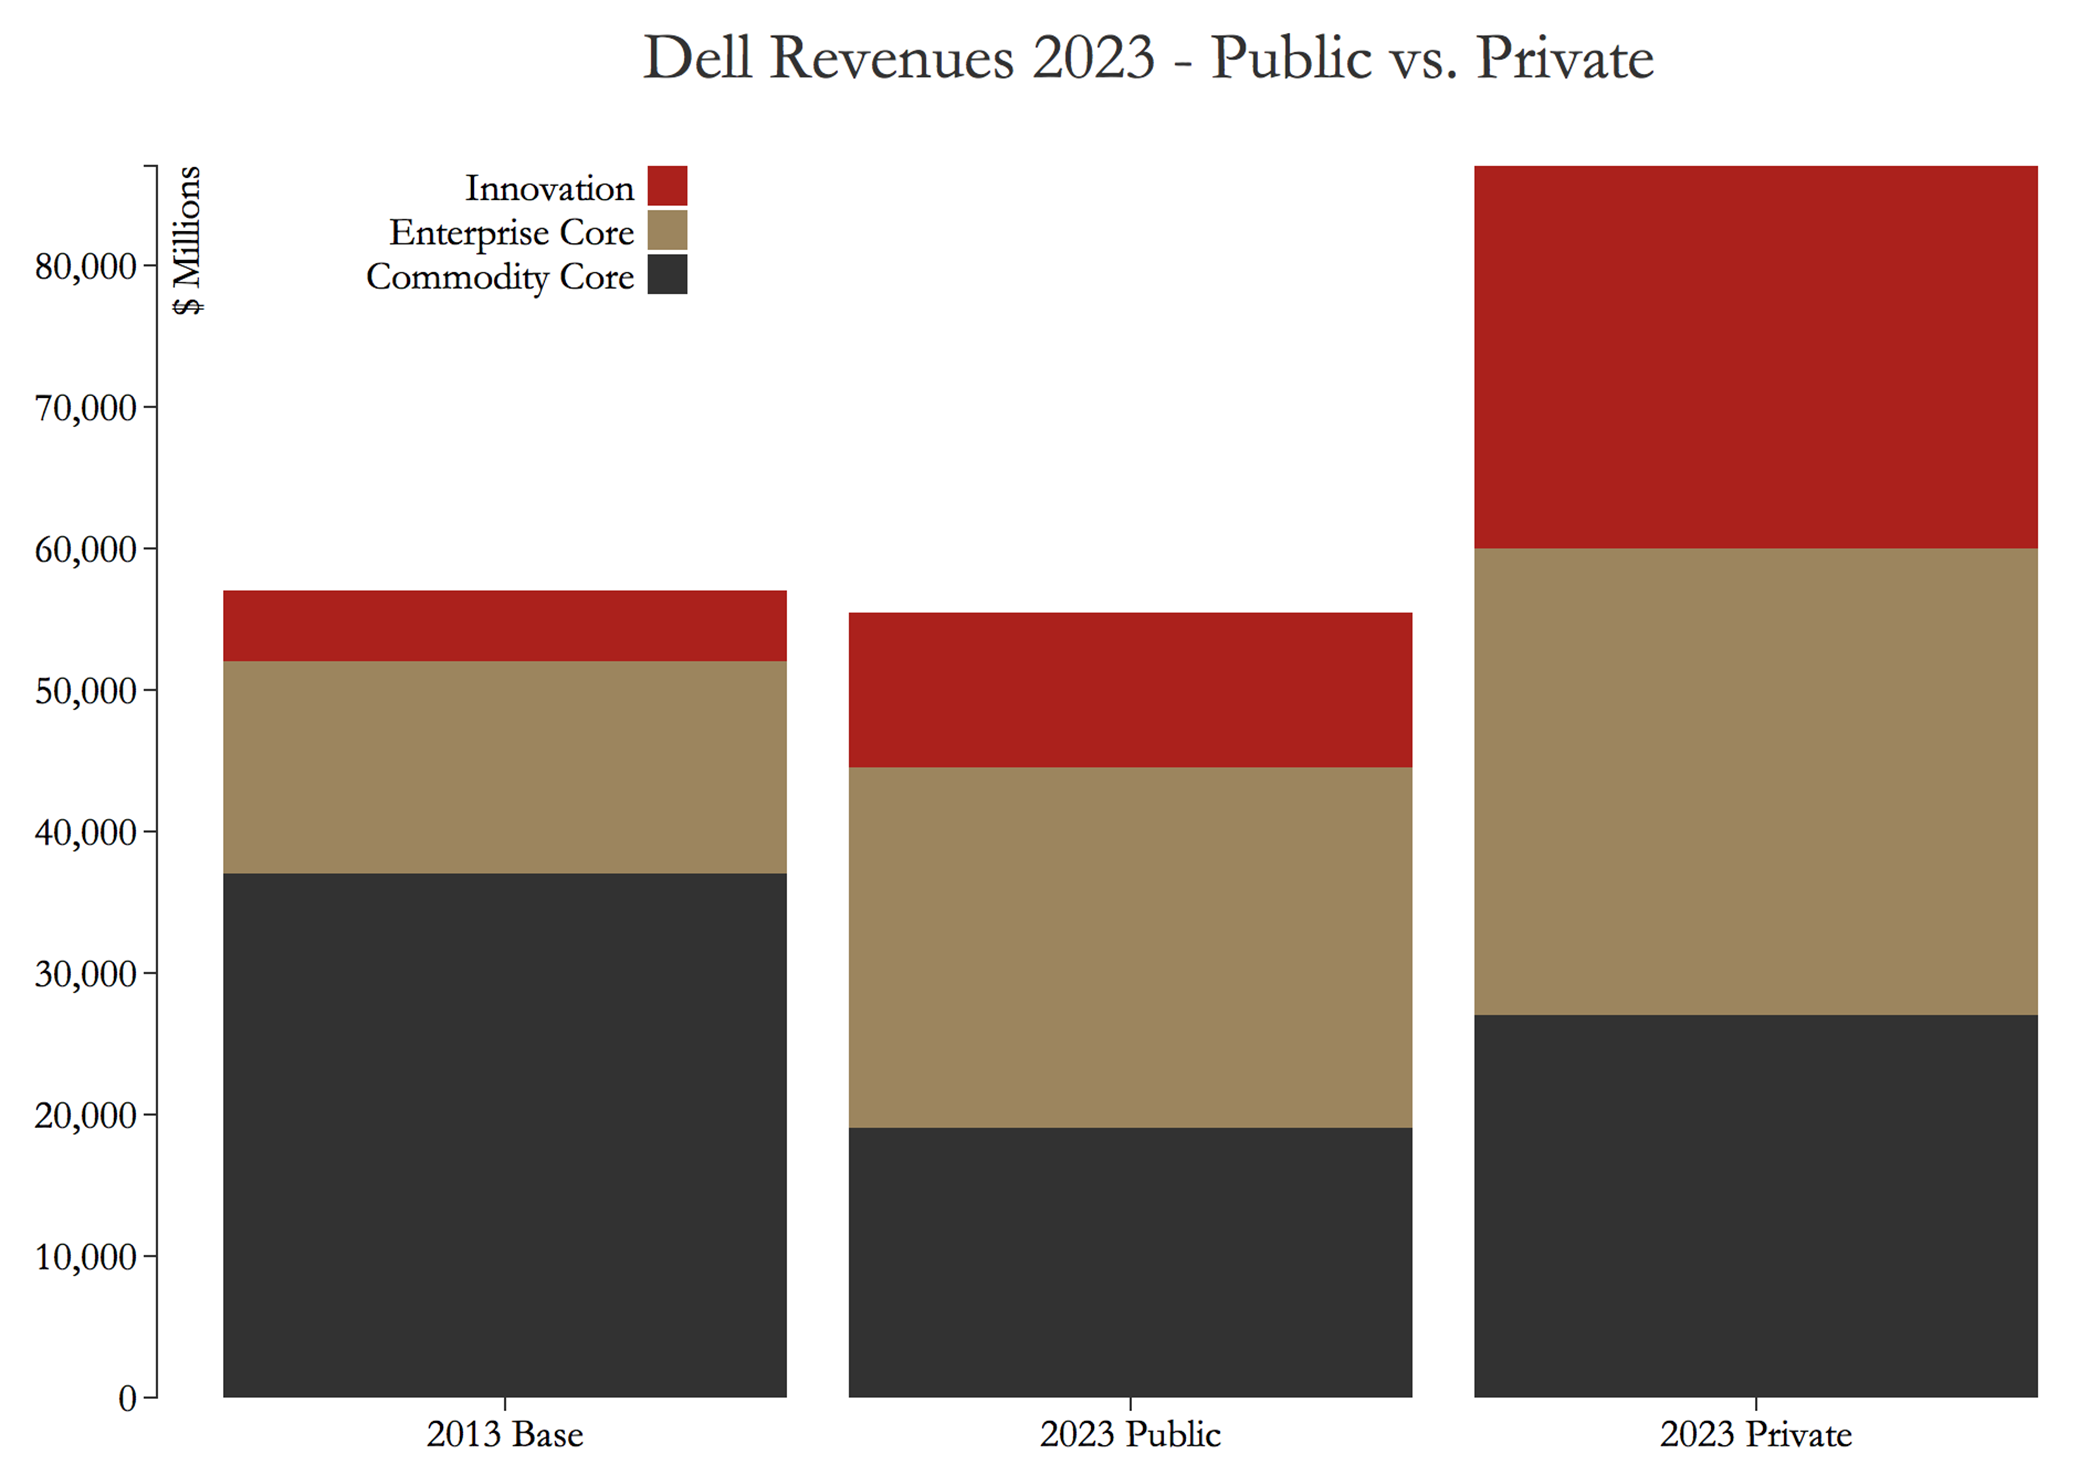 2015 projection of Dell's radical business transformation and its impact on revenues.